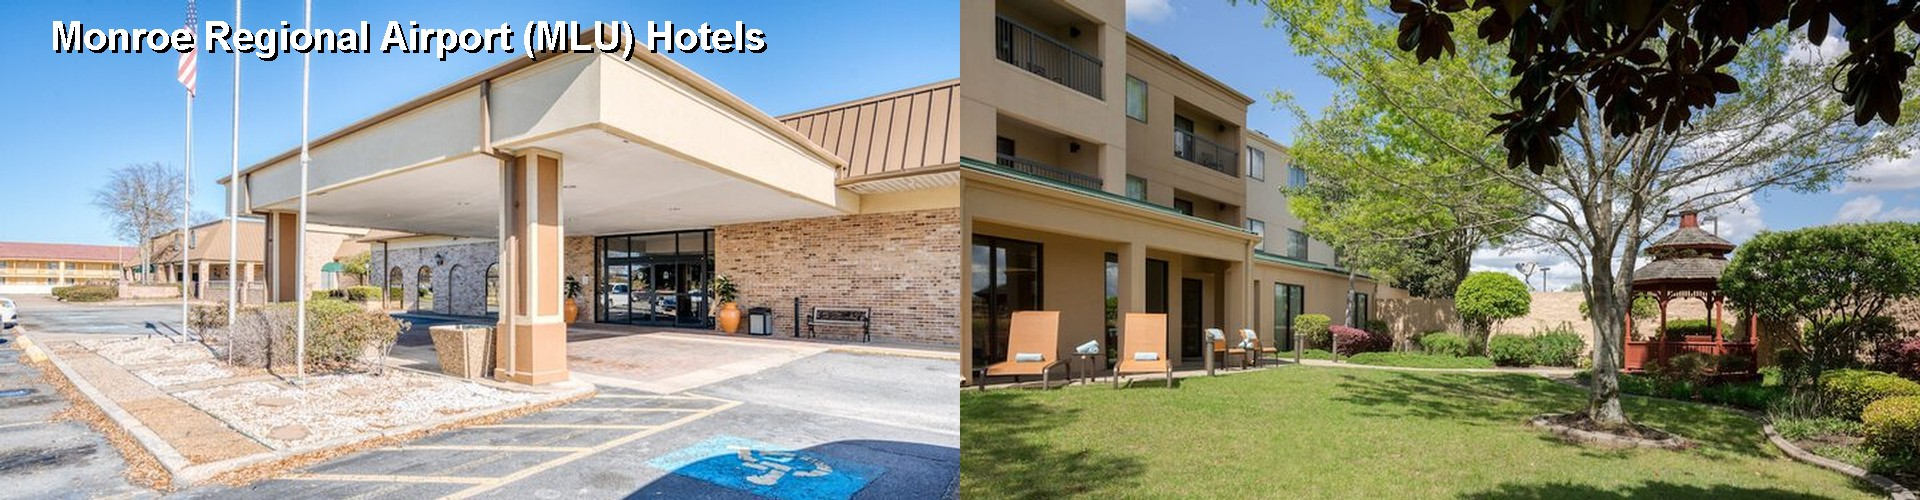 5 Best Hotels near Monroe Regional Airport (MLU)